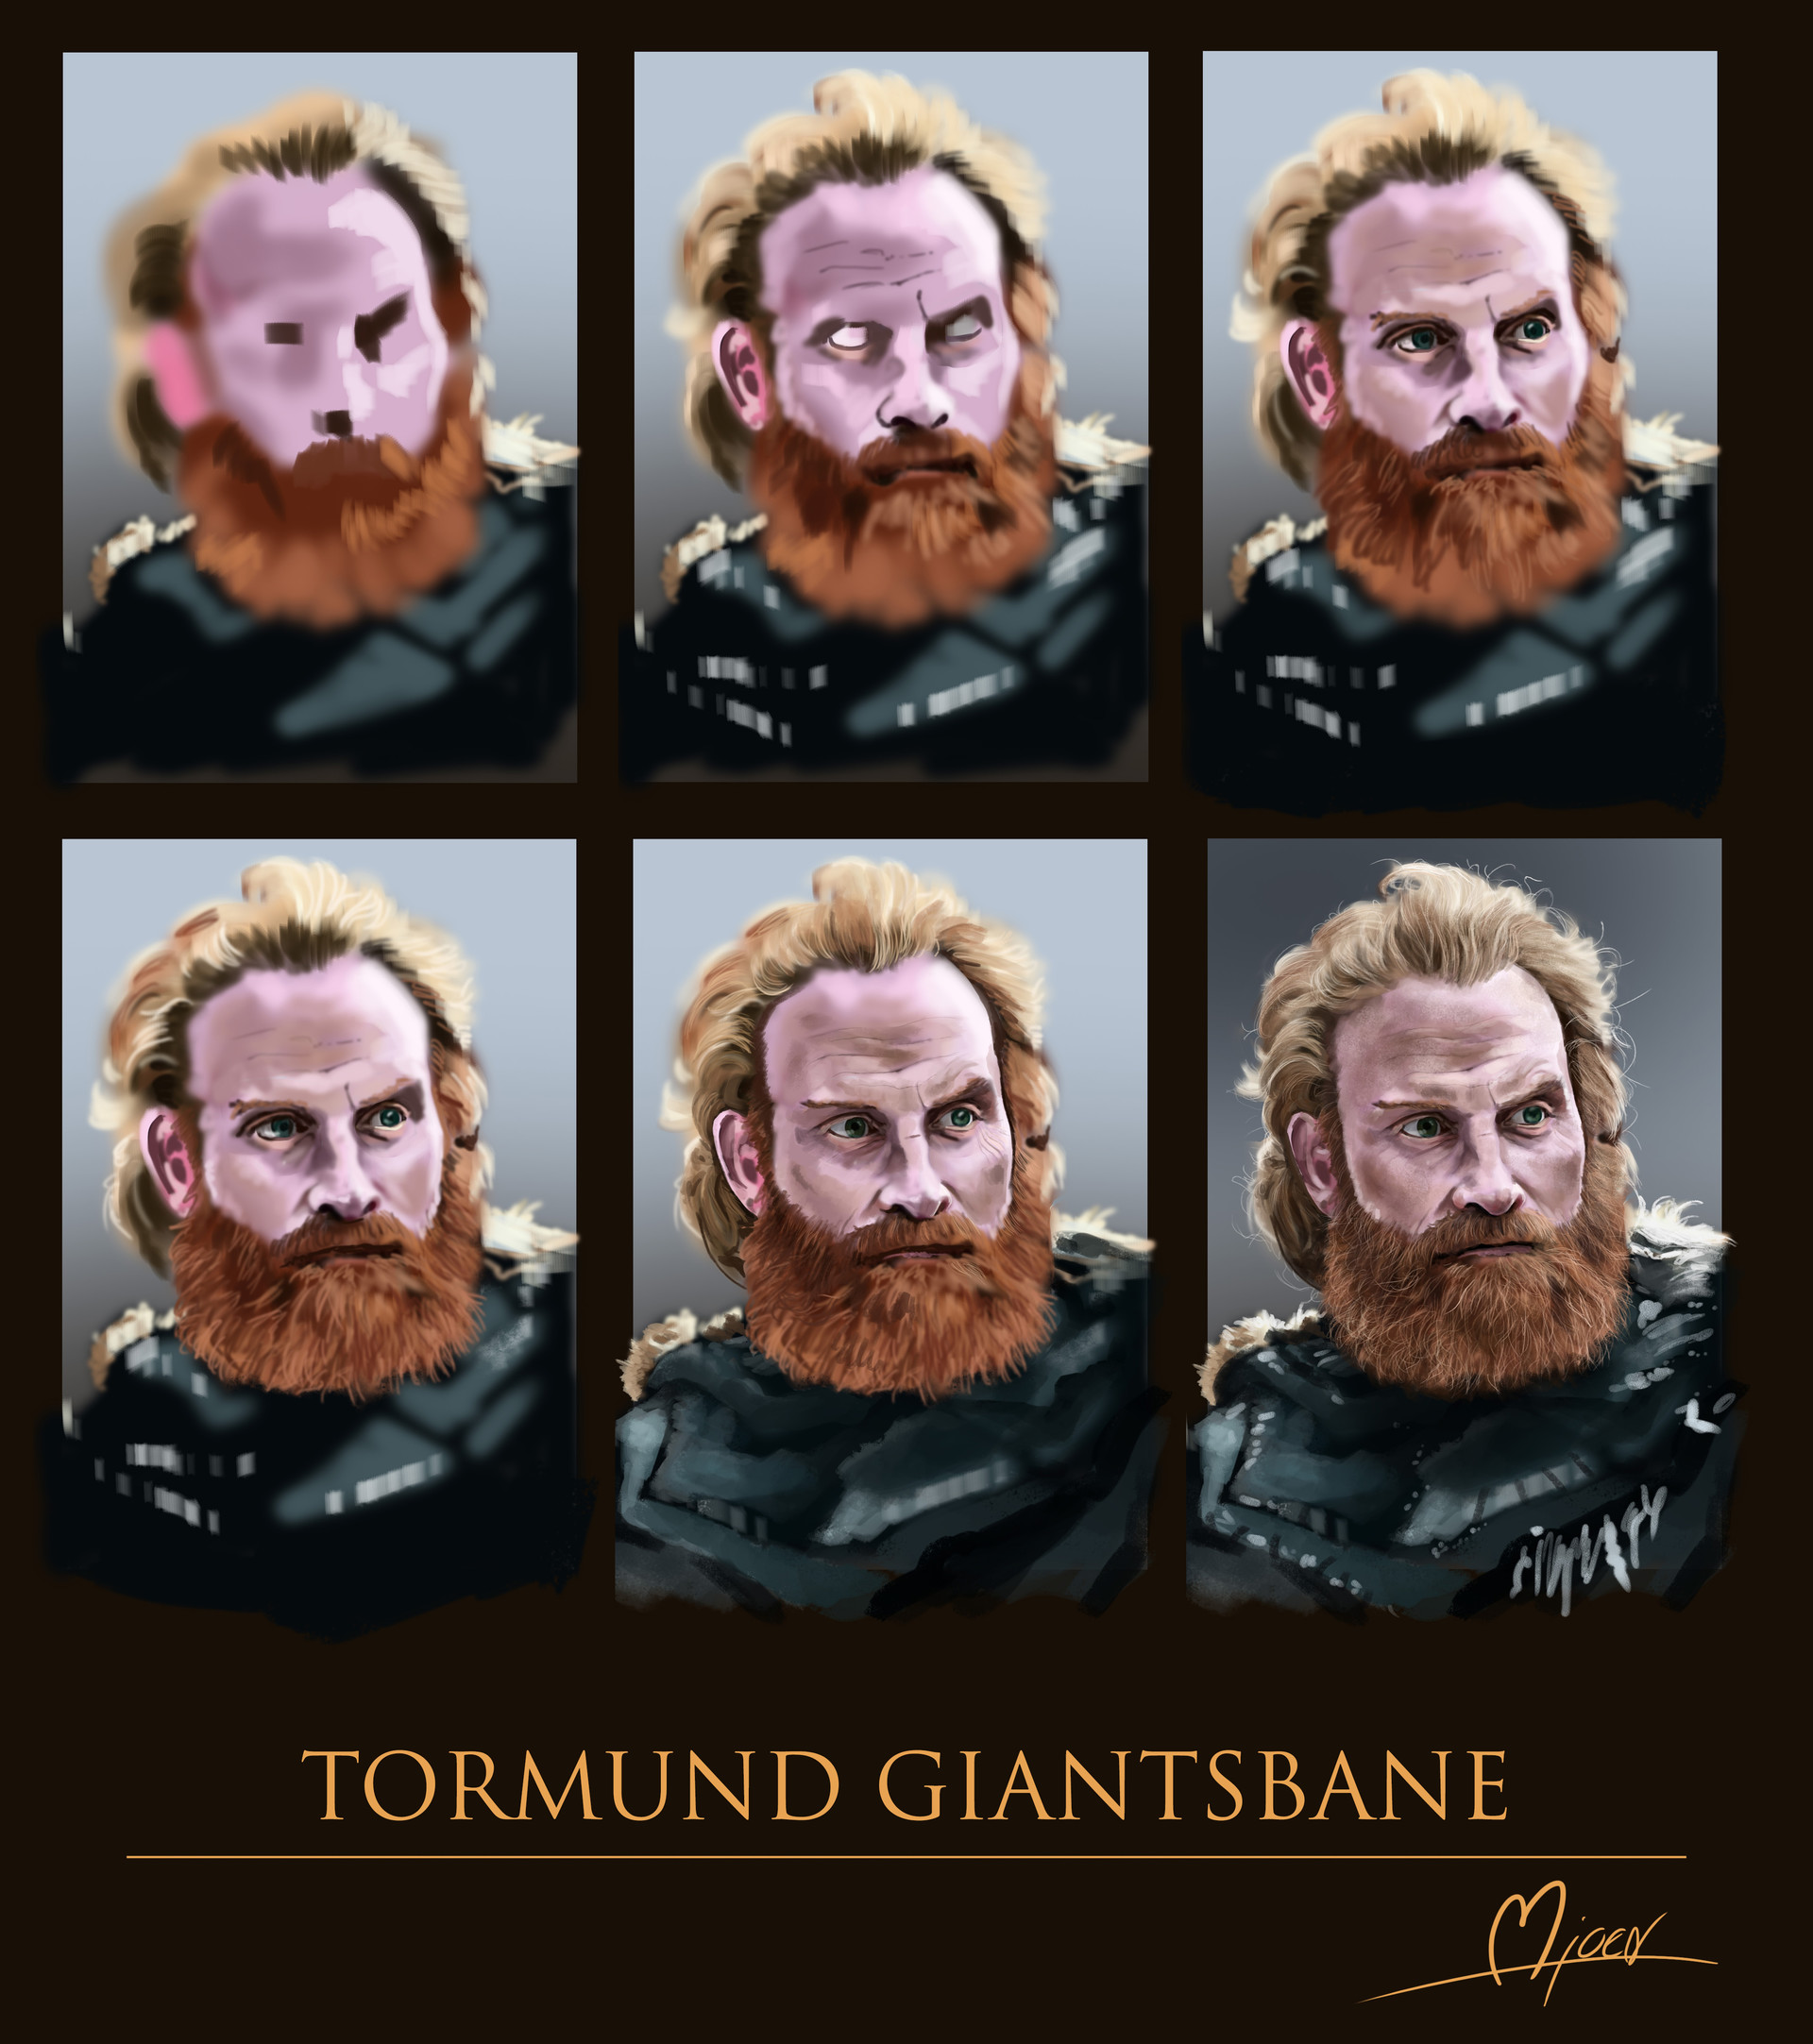 Kyle mjoen tormund progress